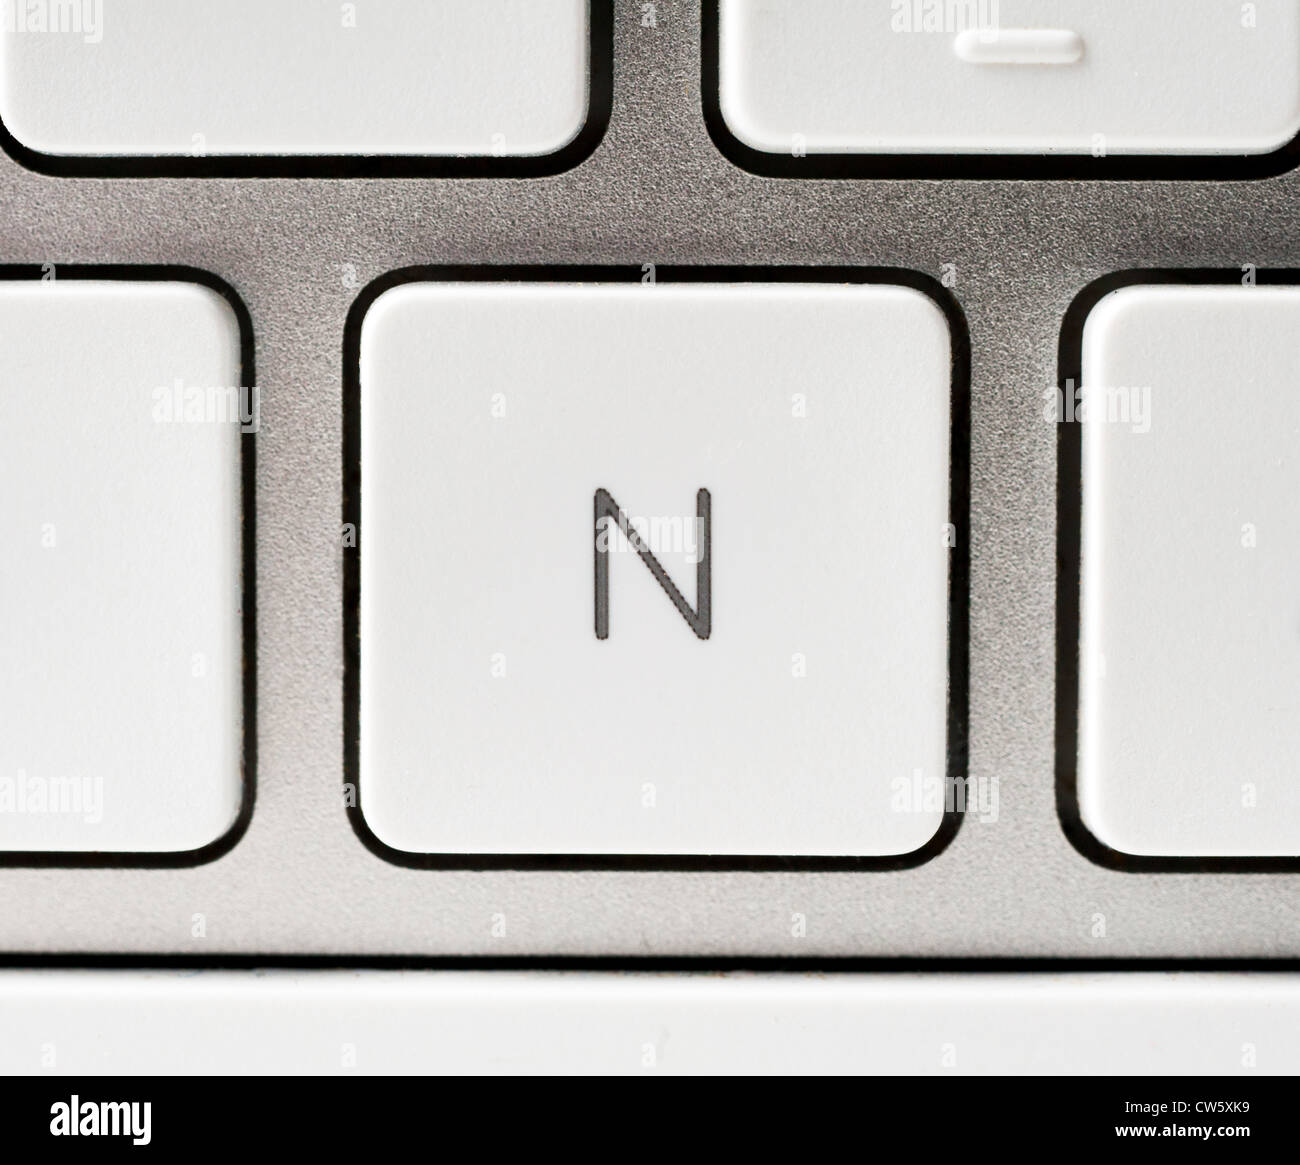 Letter N on an Apple keyboard - Stock Image